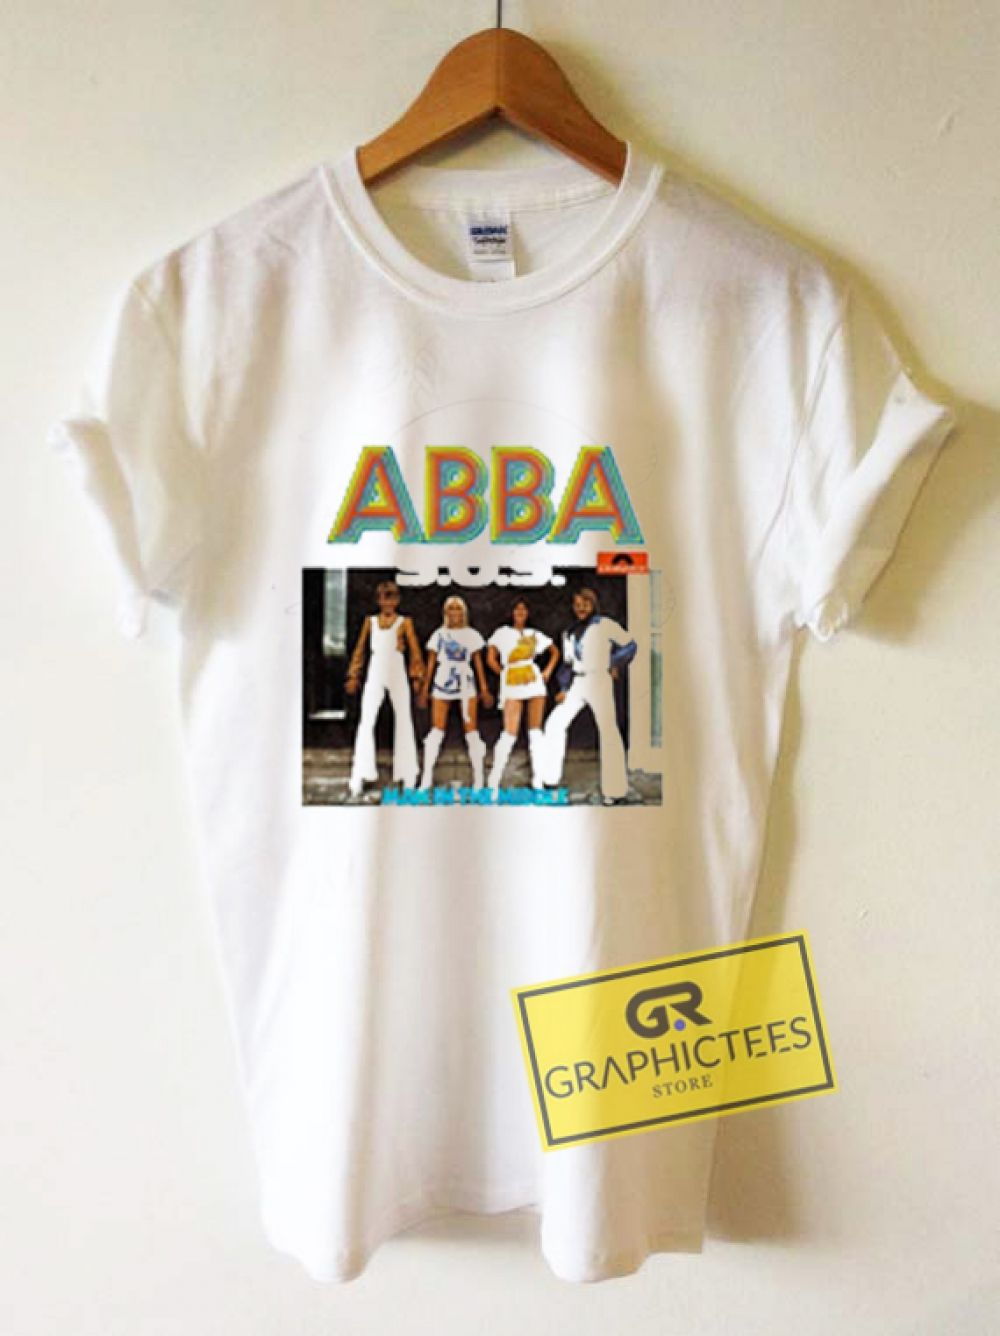 1802c309a ABBA Vintage Graphic Tees Shirts //Price: $13.50 // #mens graphic tees